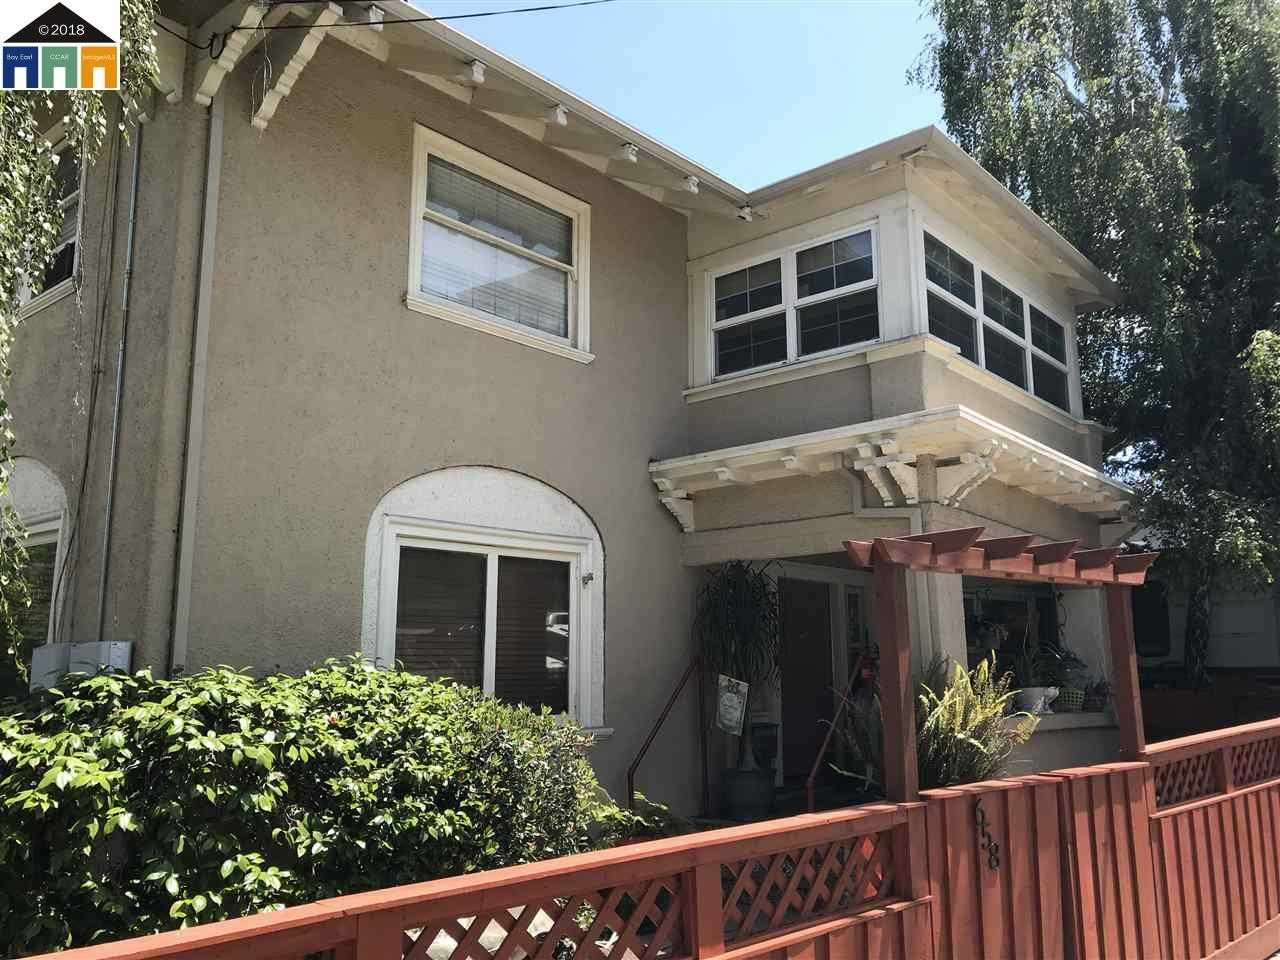 $1,885,000 - 5Br/3Ba -  for Sale in Oakland, Oakland